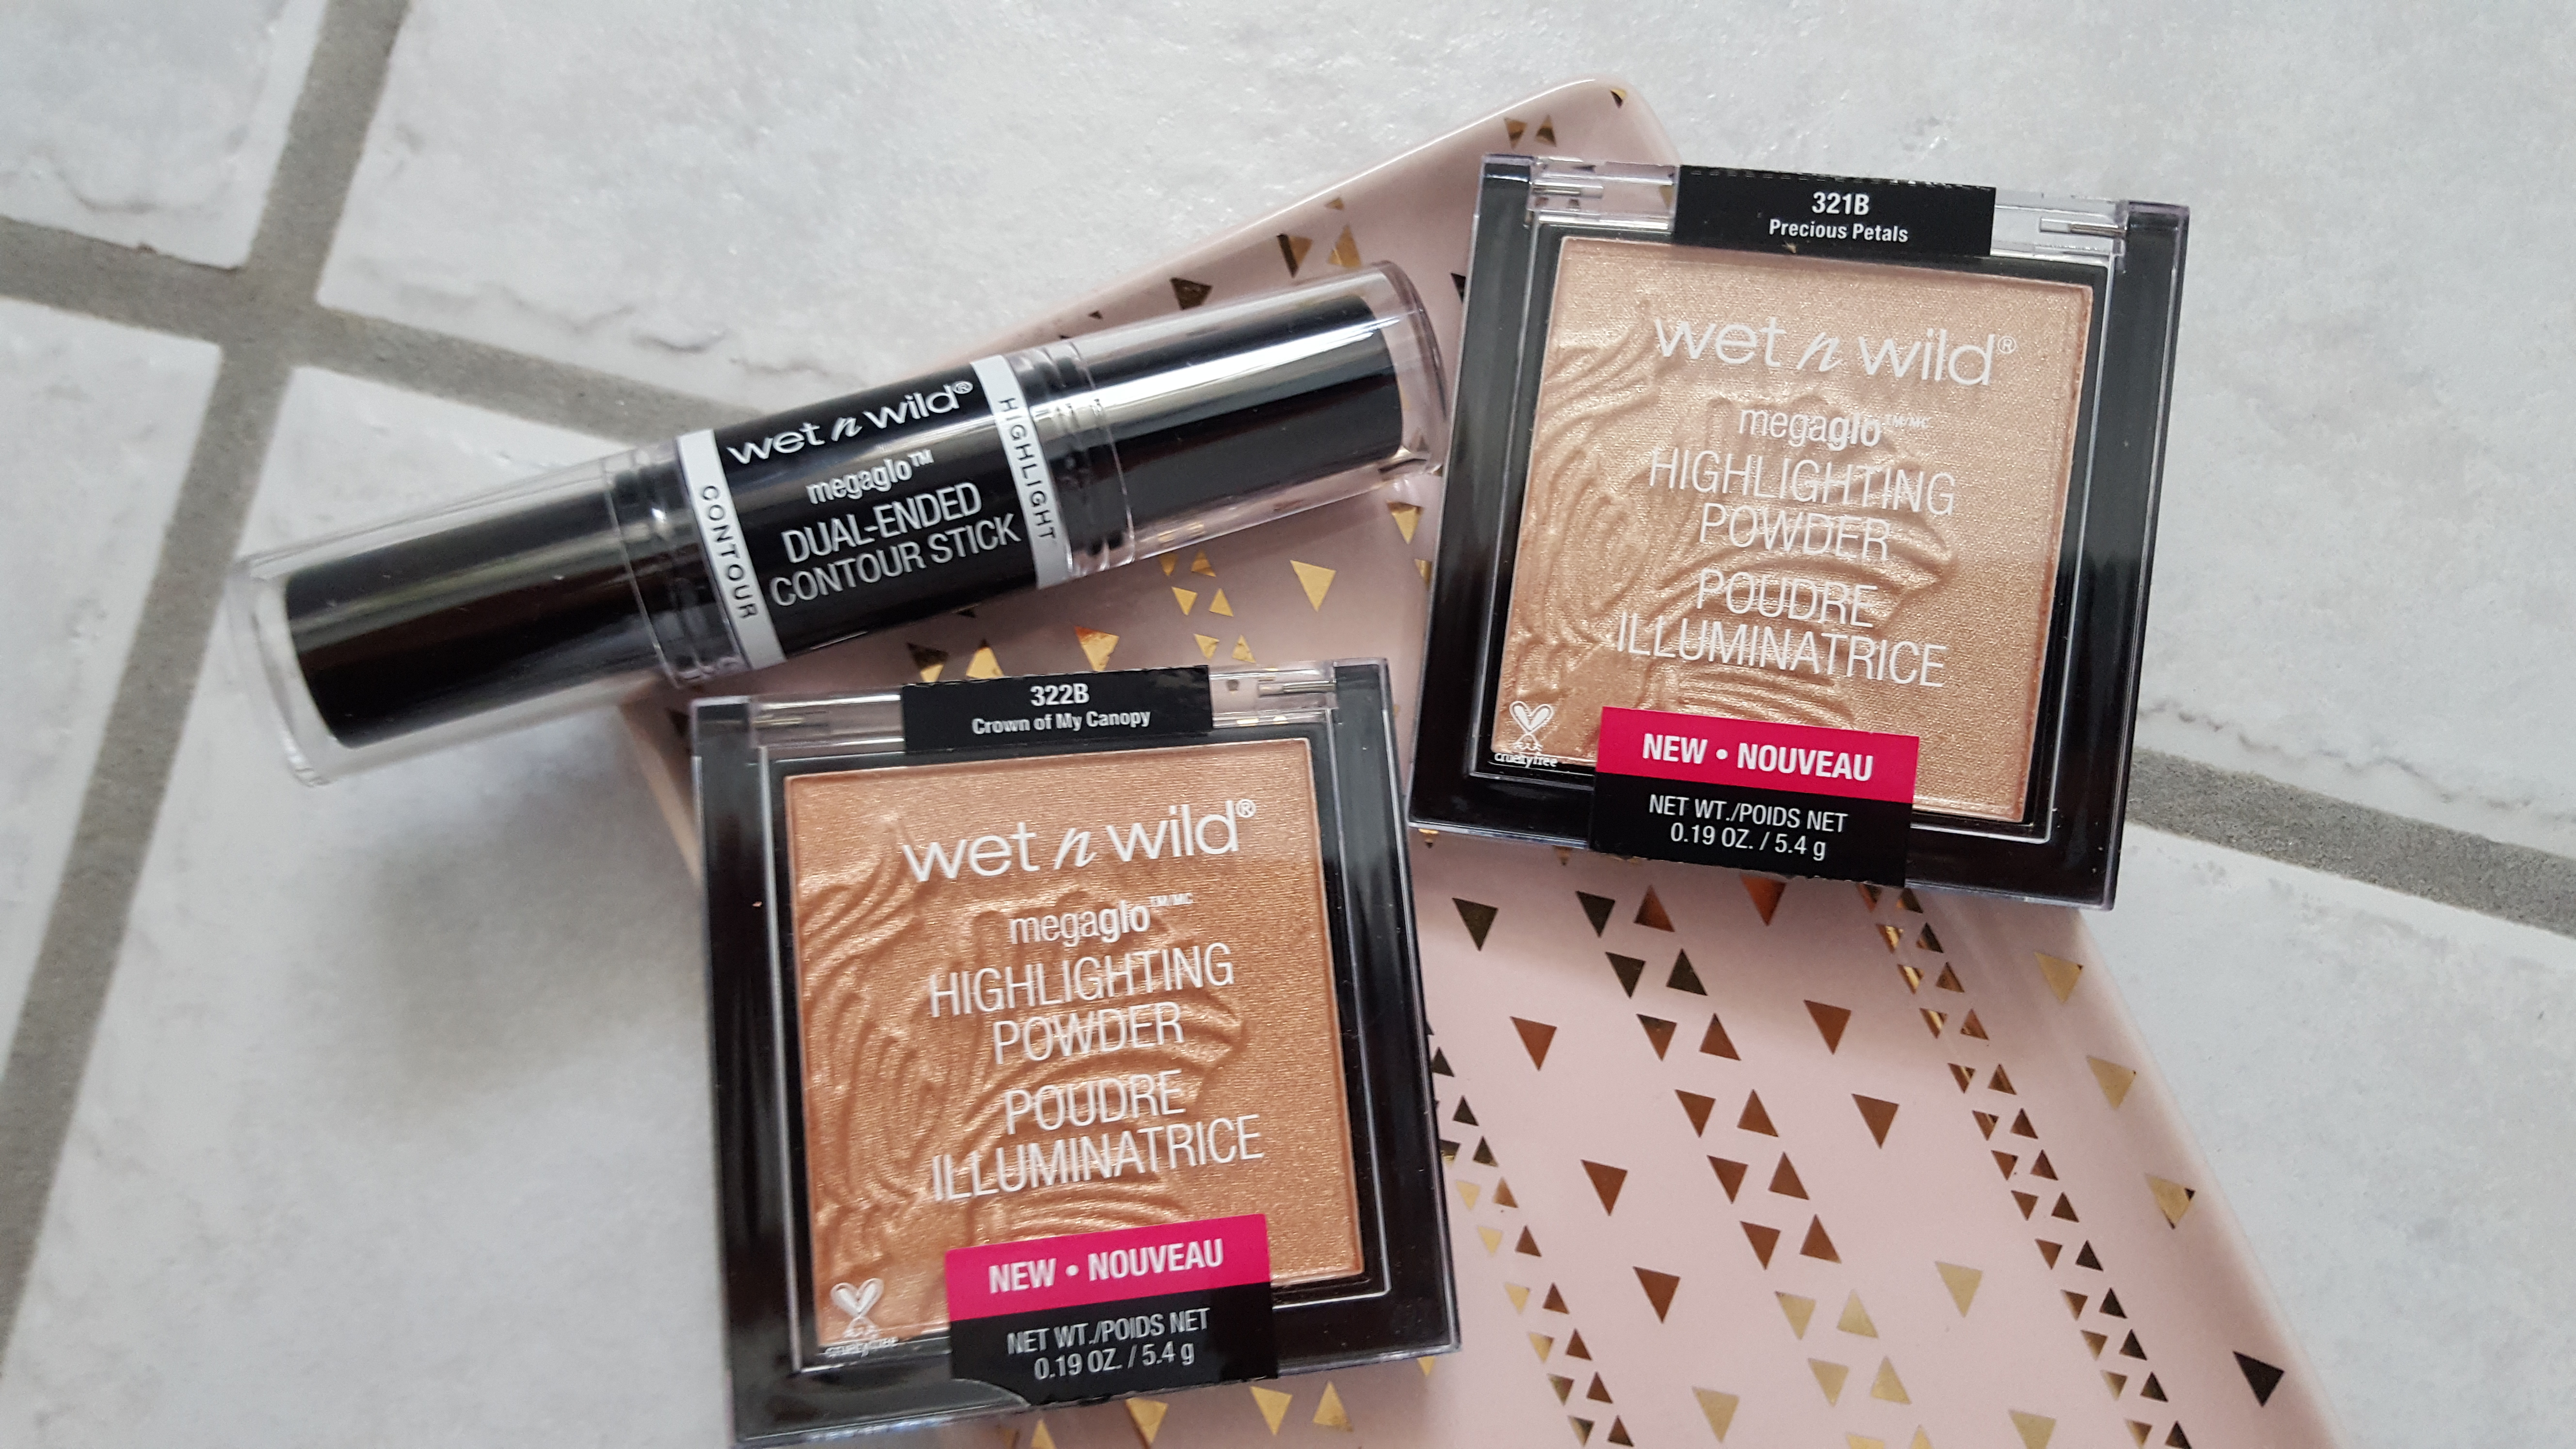 Brand Collection Wet N Wild 2017 Favs Im Not A Beauty Mega Glo Dual Ended Contour Stick Light Medium Two Standout Face Products For Me Are The 799 Cad And Megaglo Highlighting Powder 699